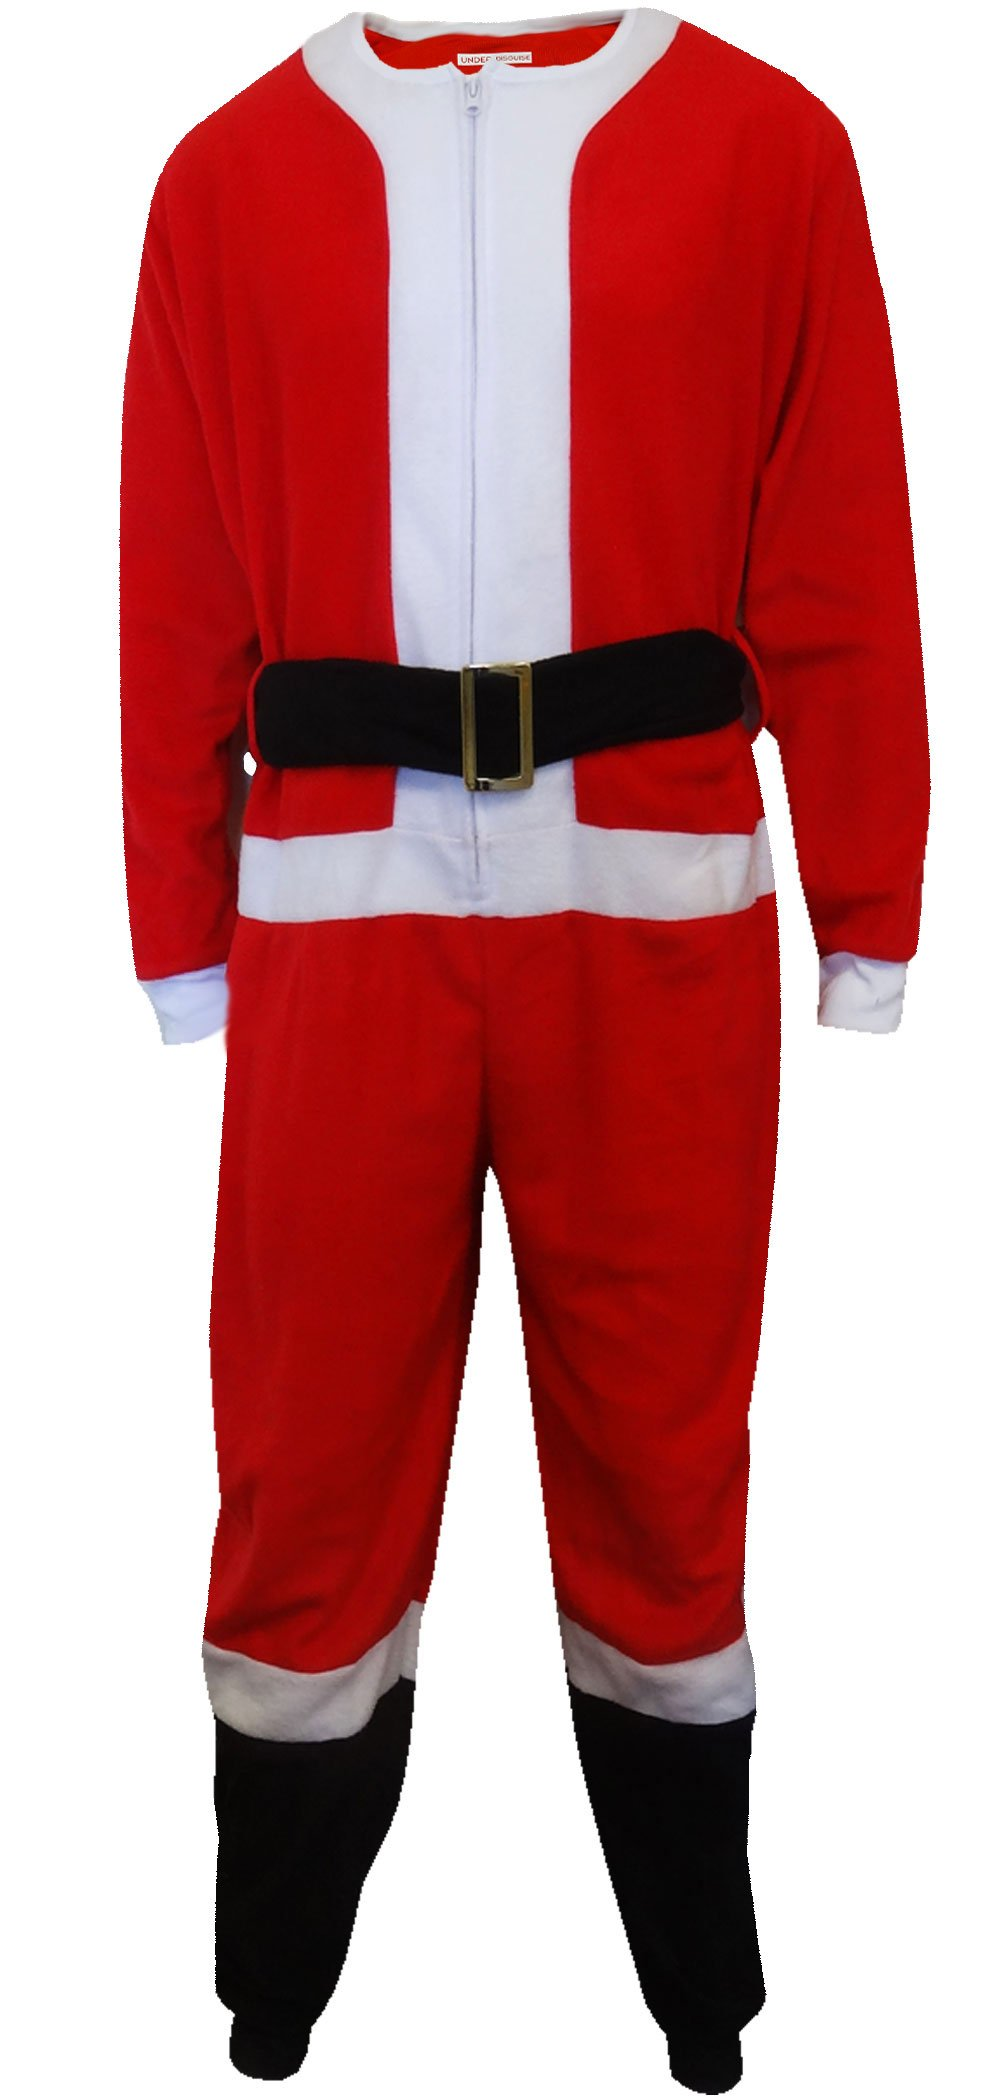 Santa Suit Fleece Men's One Piece Pajama for men